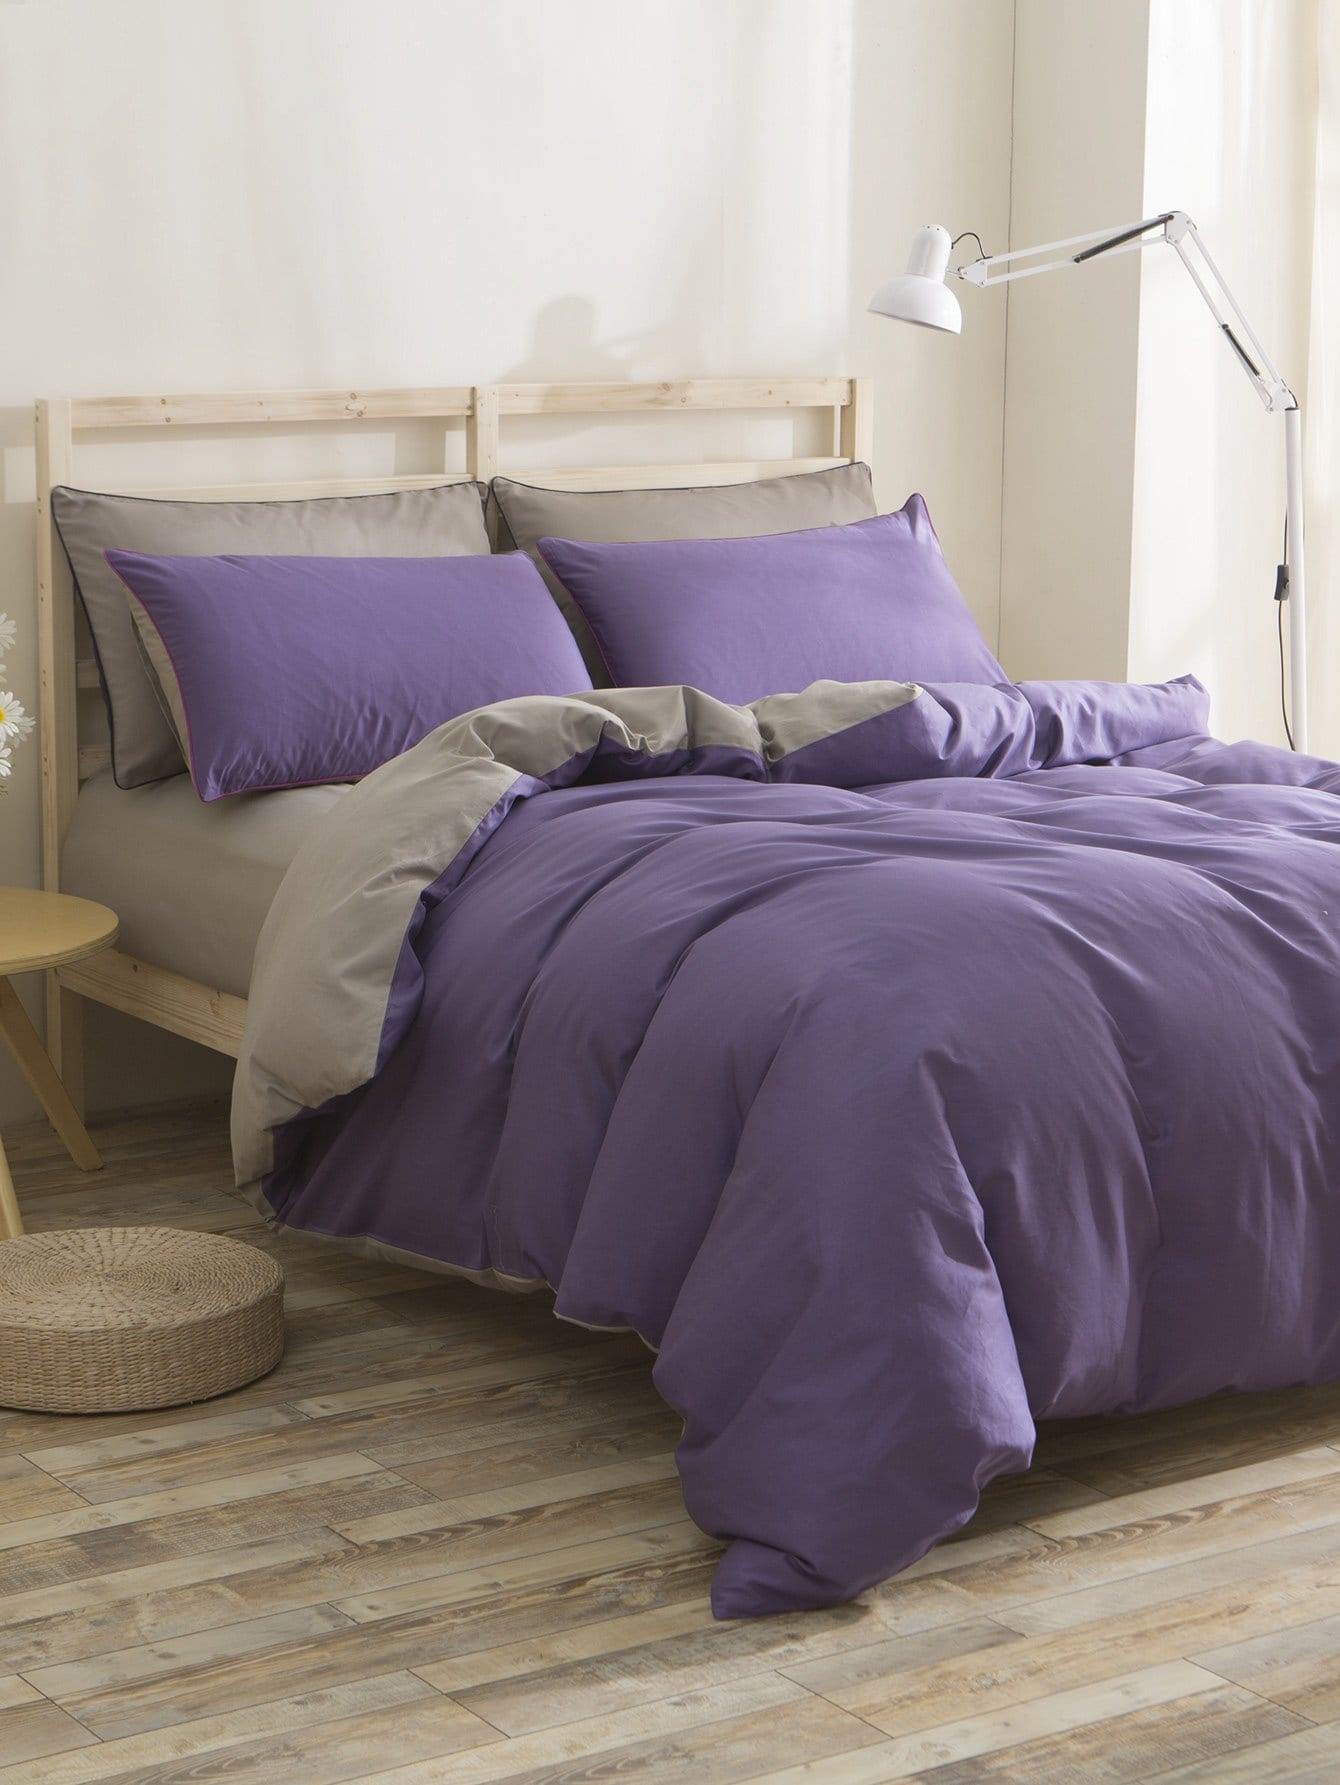 Two Tone Bedding Set телефон факс